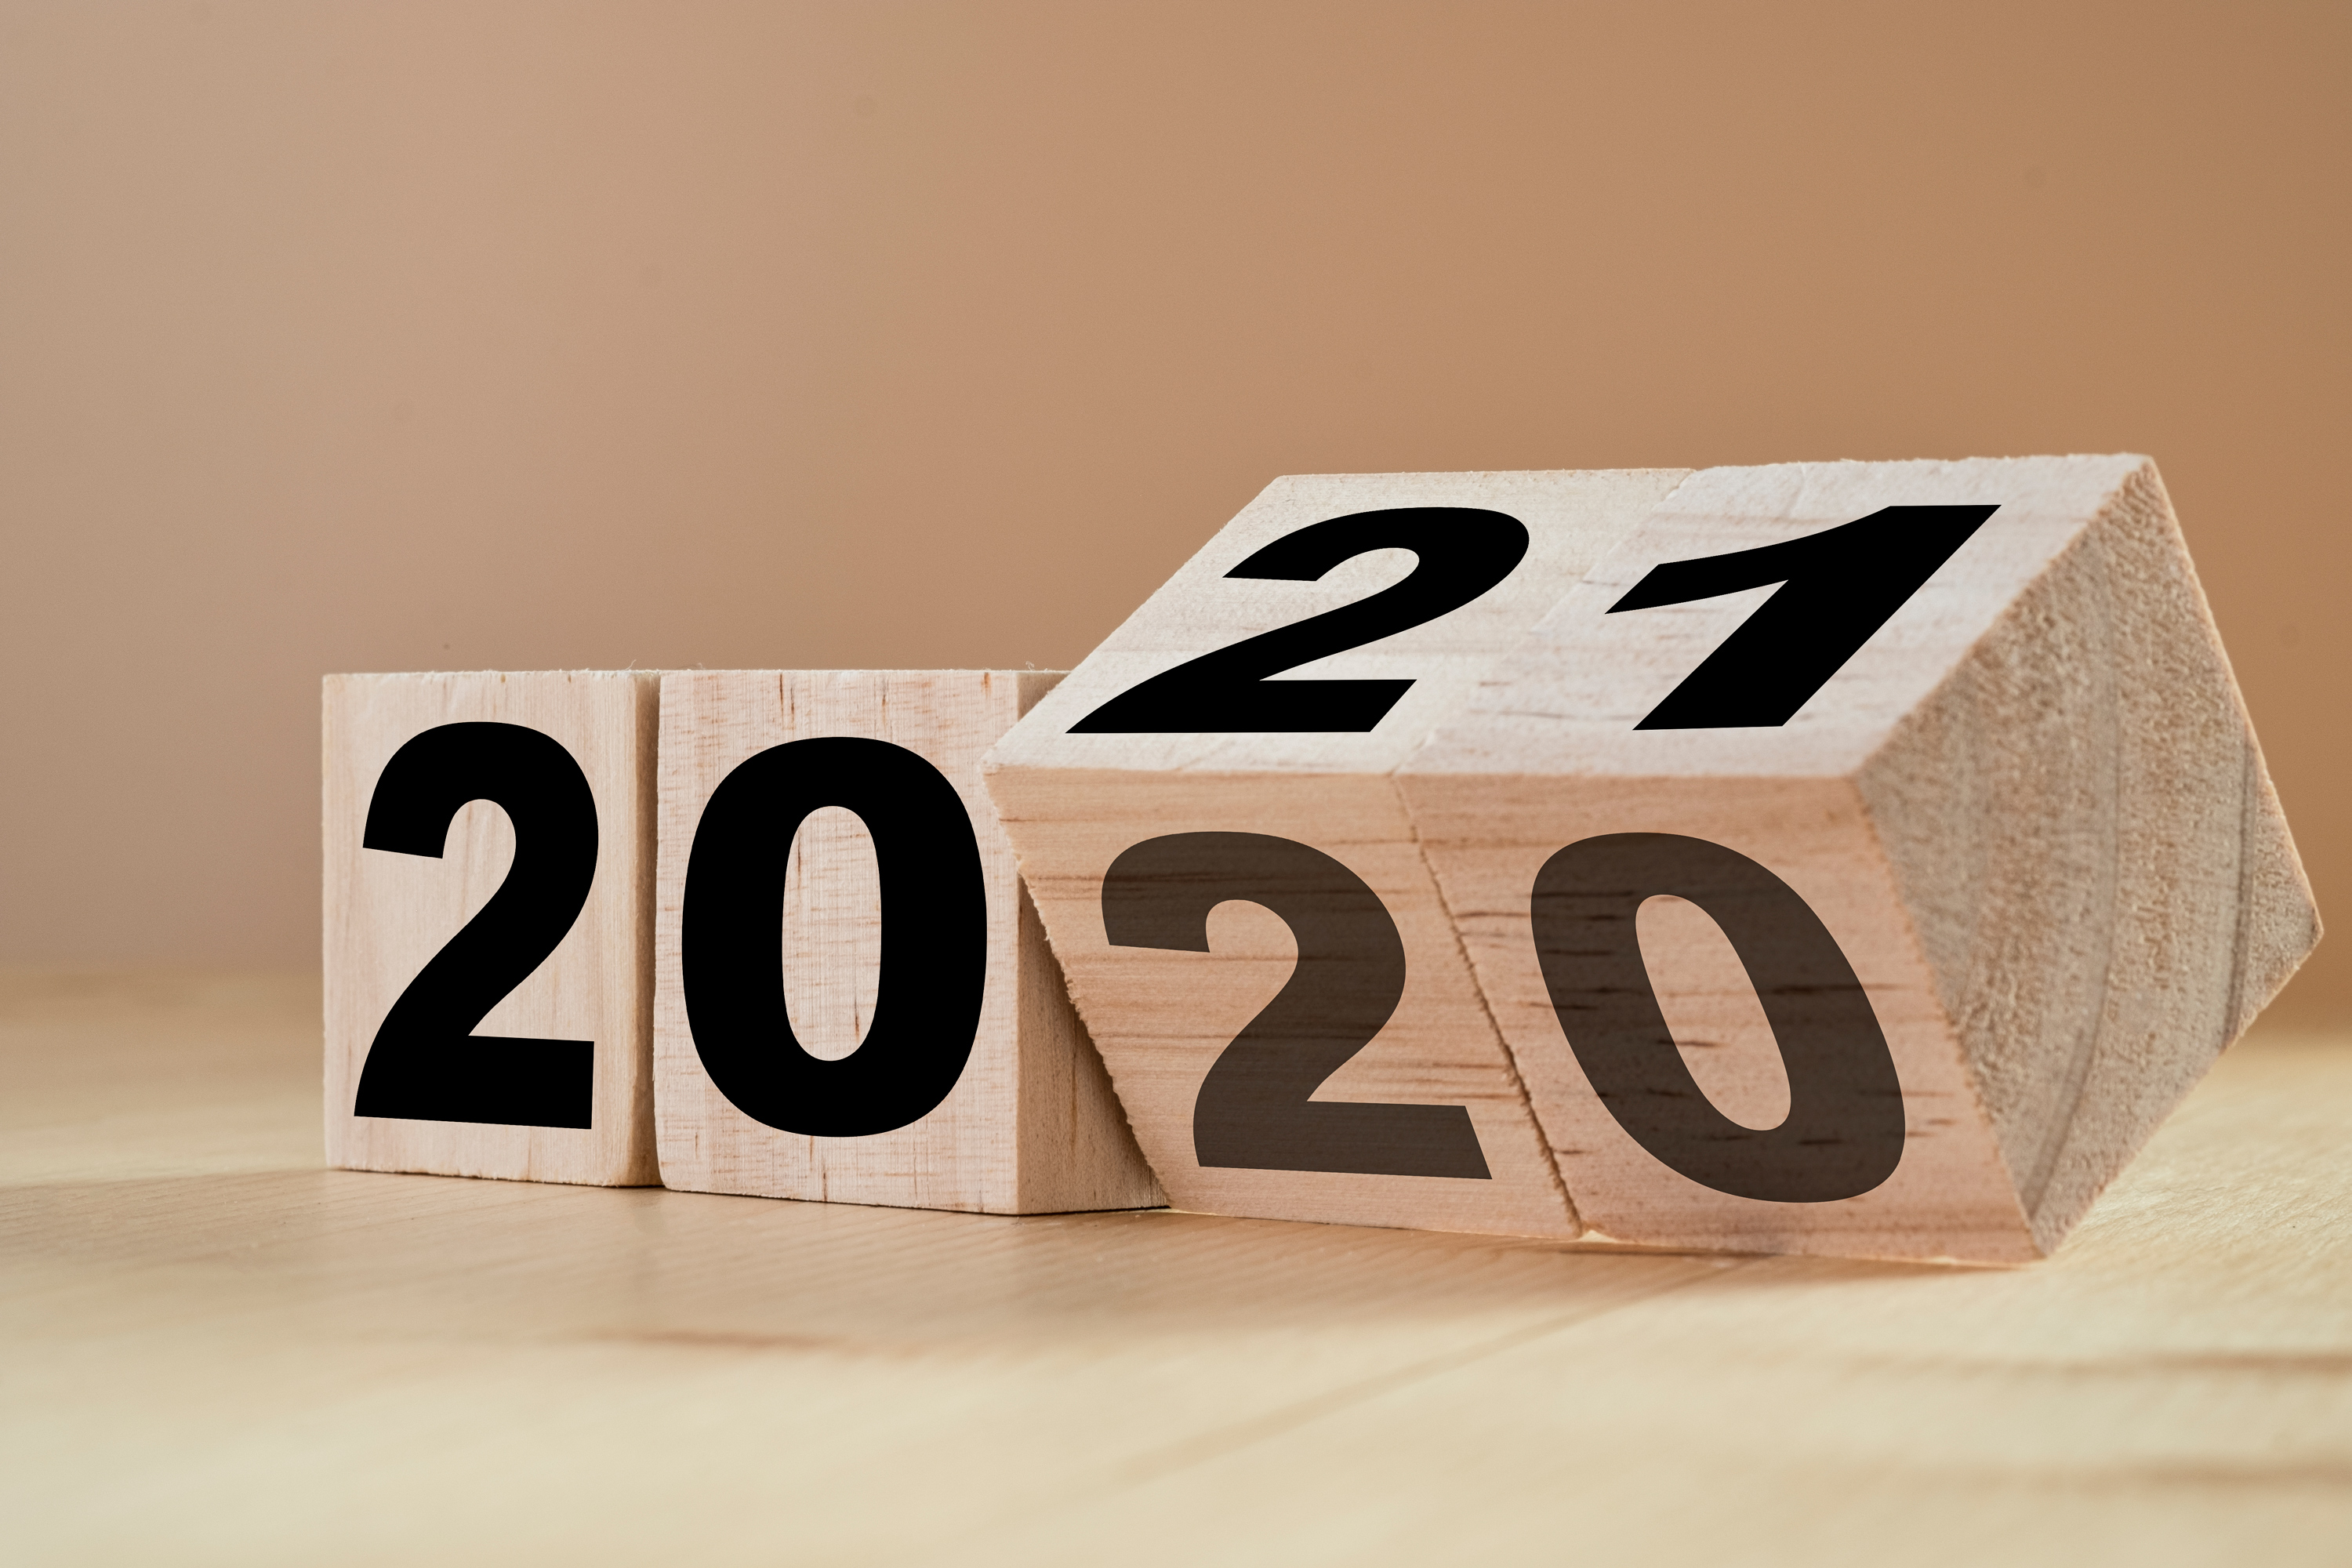 Amp 2021 forecast: The year in review and the year ahead